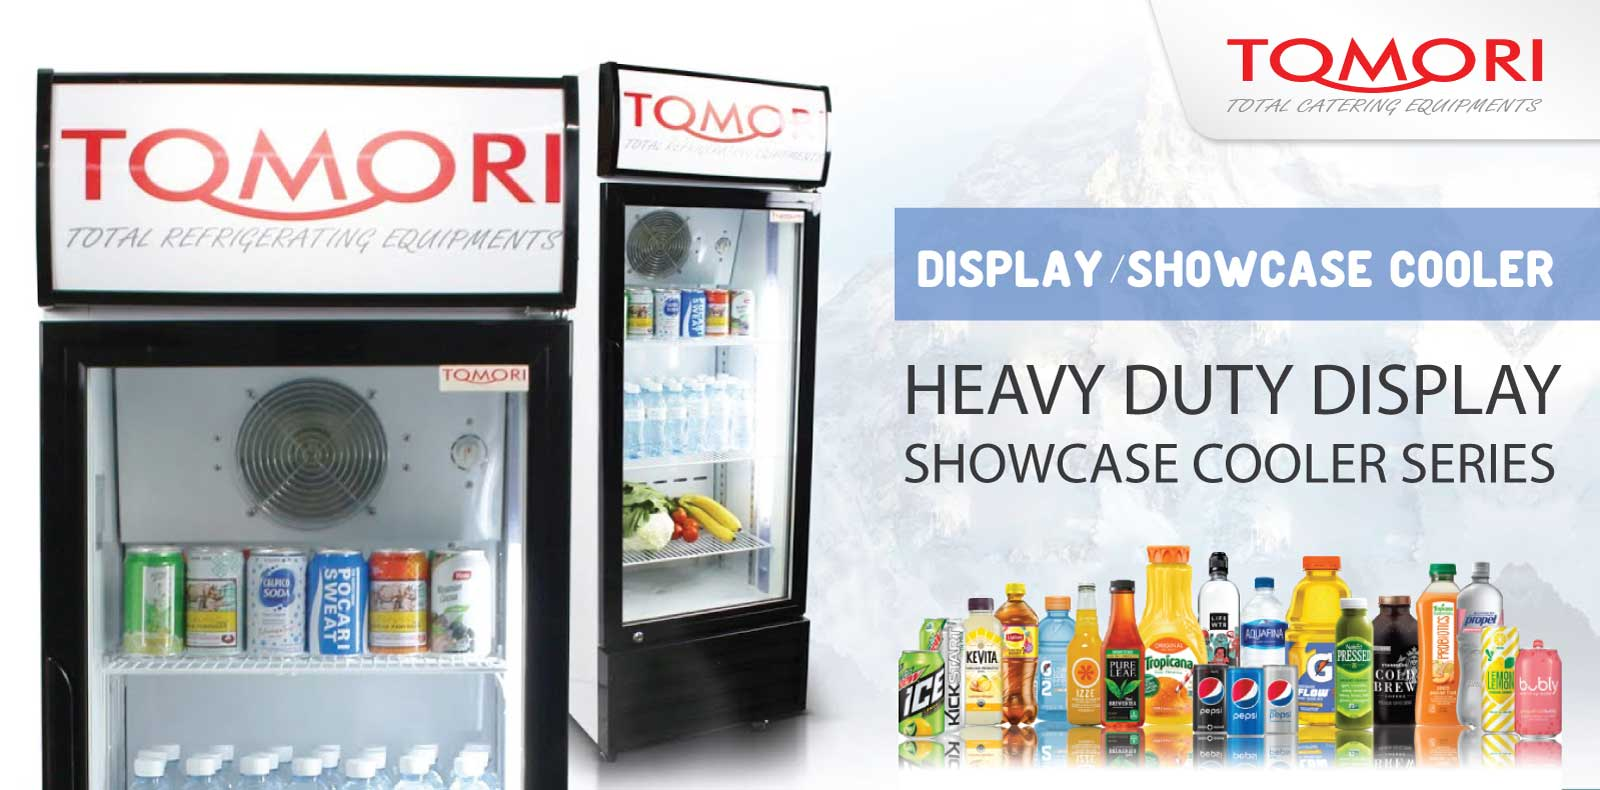 Tomori Showcase Cooler Banner